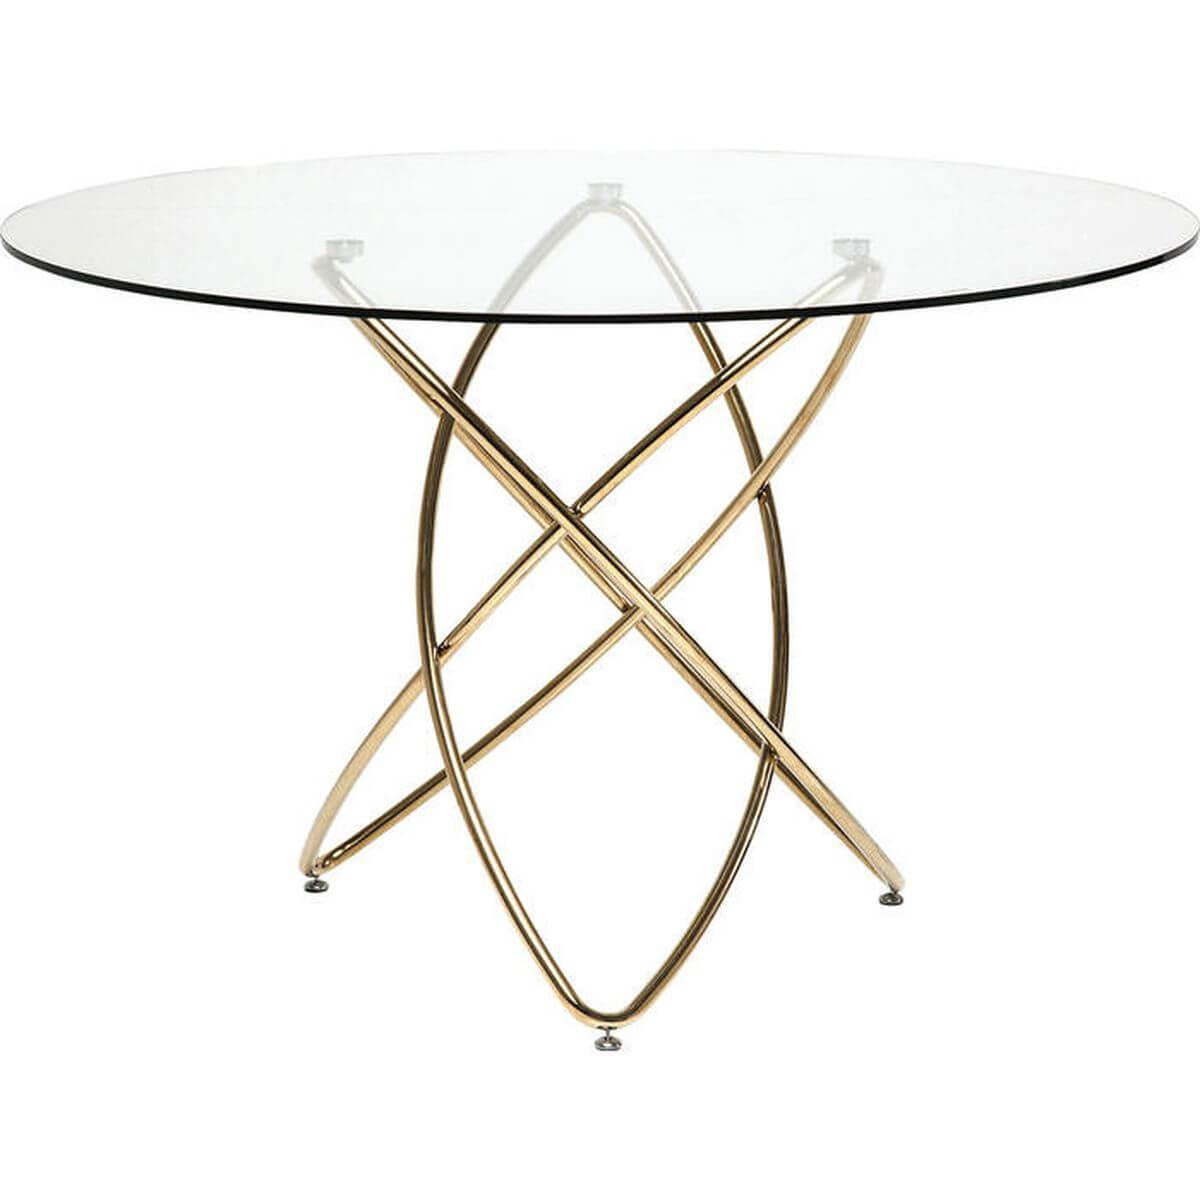 Table Molekular Gold Ø 120cm